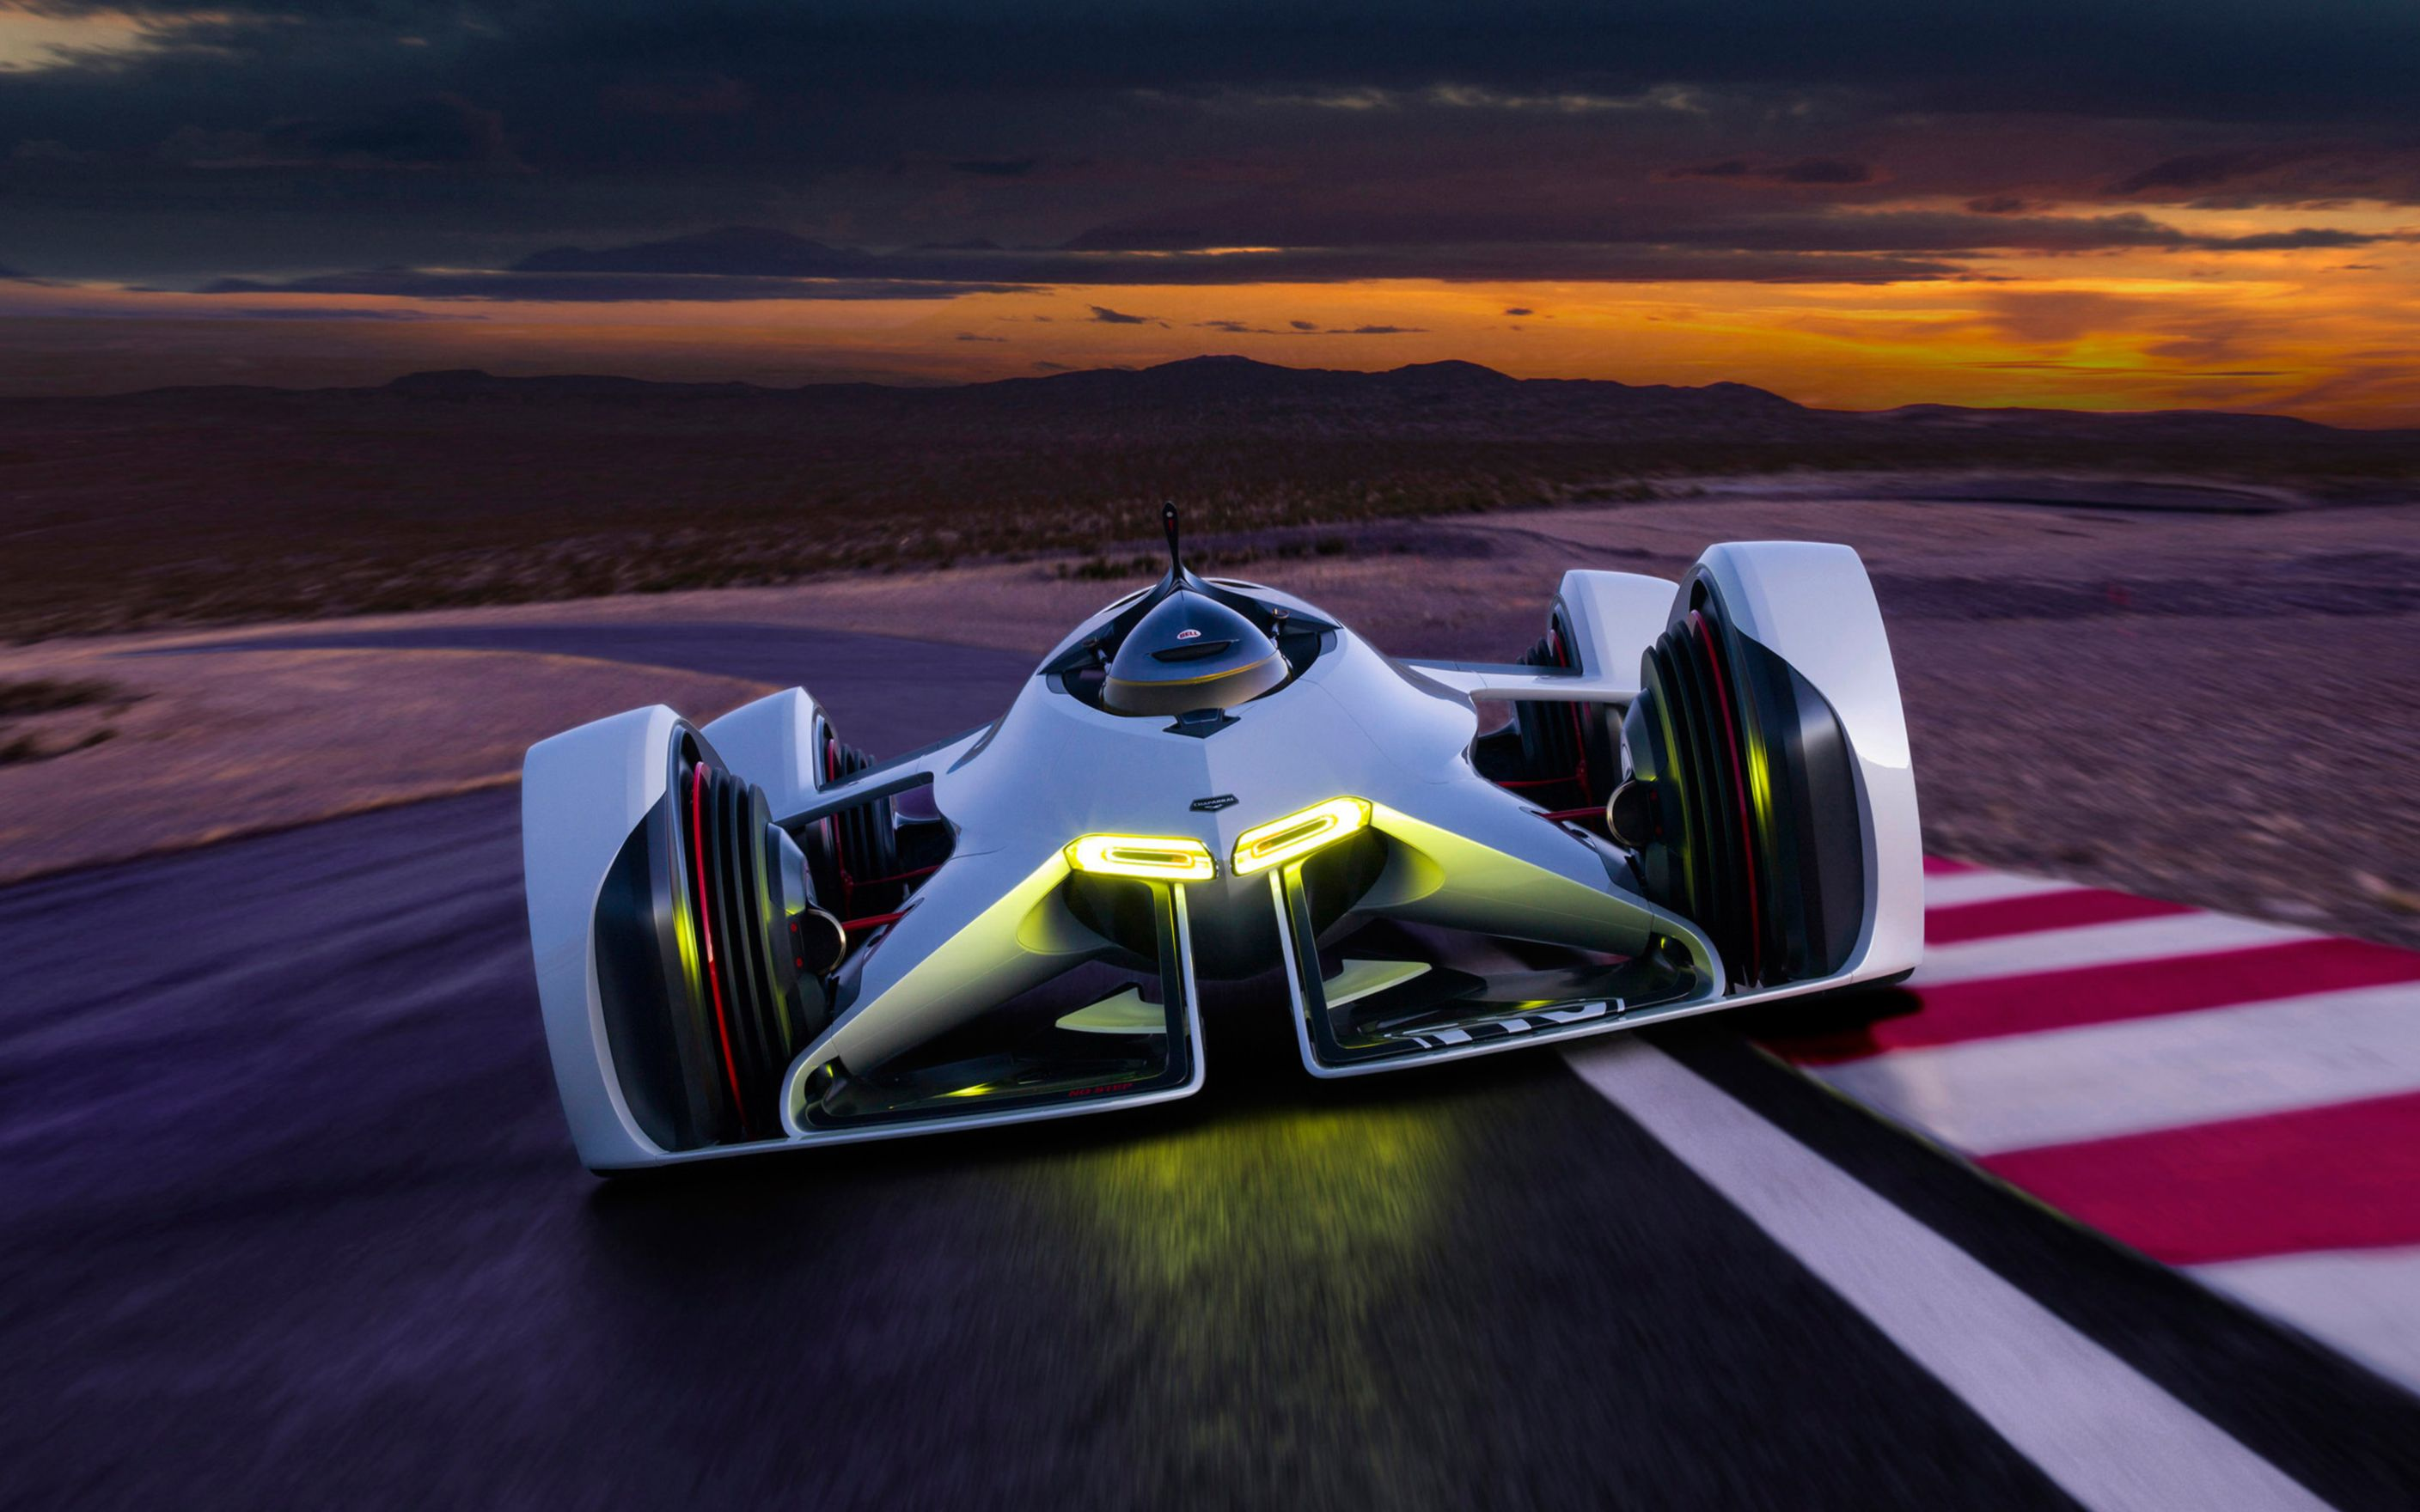 Download free HD 2014 Chevrolet Chaparral 2x Vision Gran Turismo Concept Wide Wallpaper, image